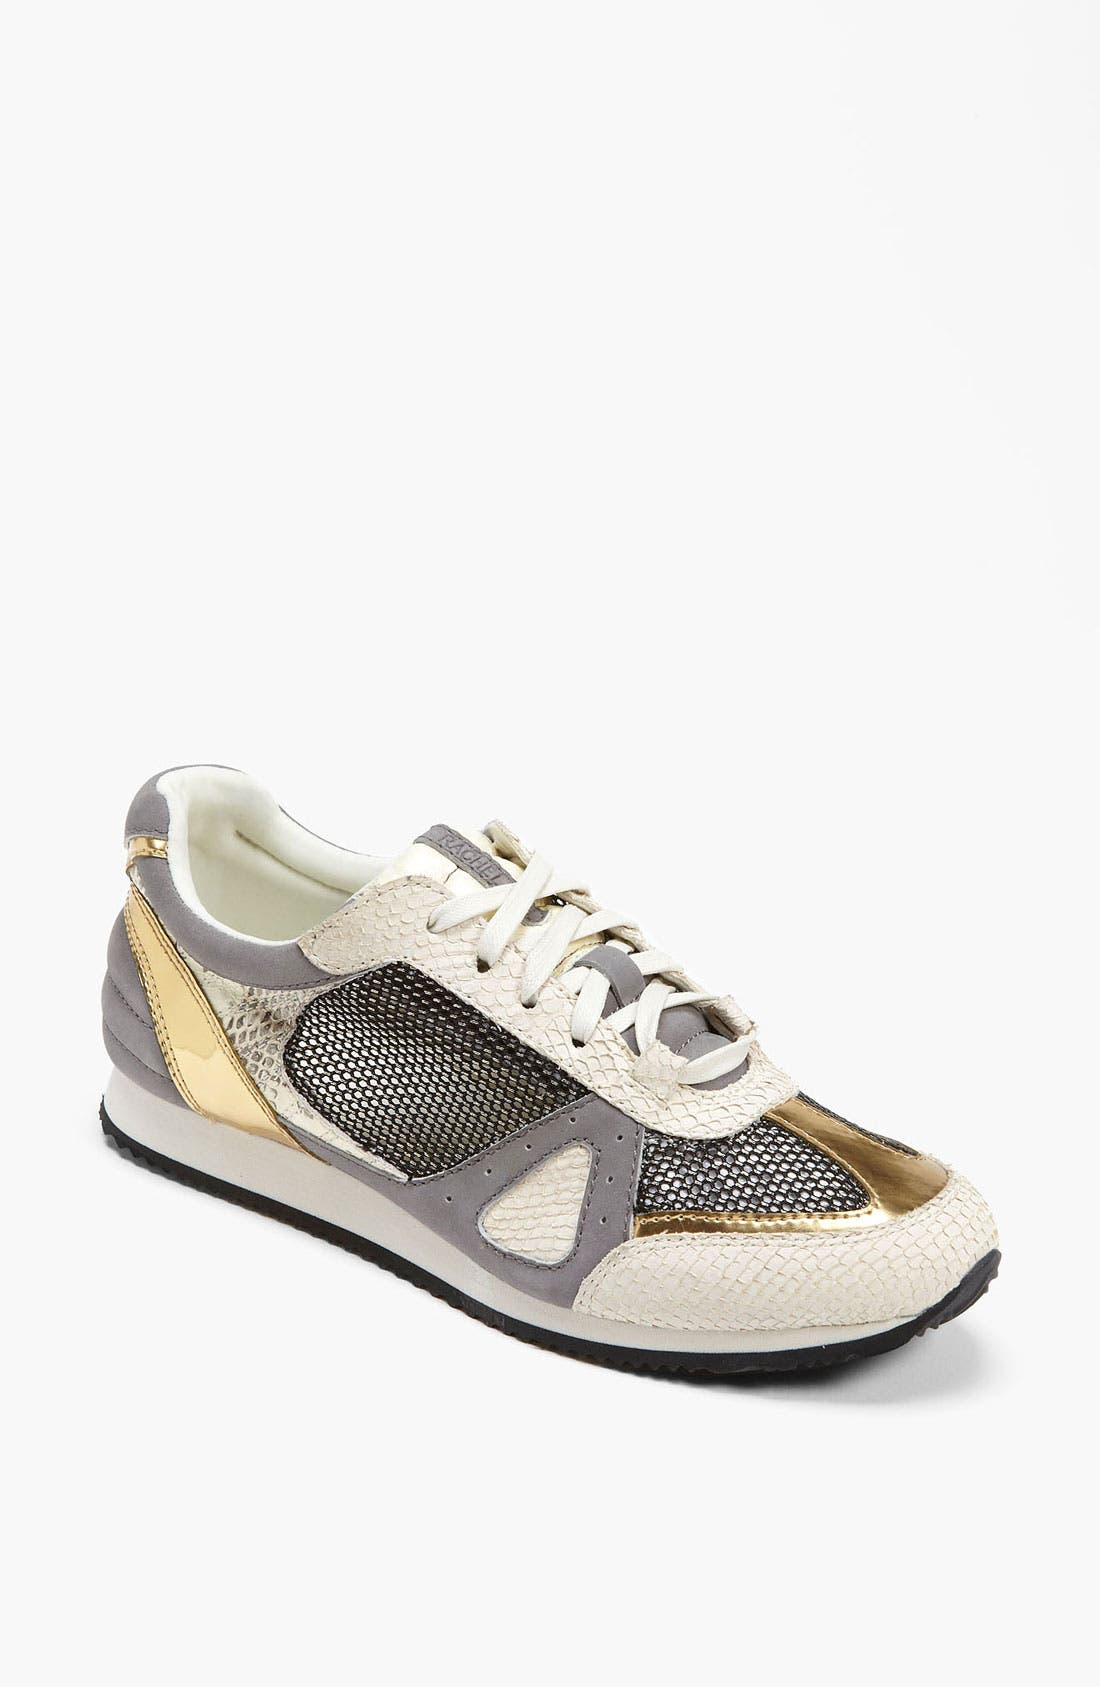 Alternate Image 1 Selected - Rachel Zoe 'Jeni' Sneaker